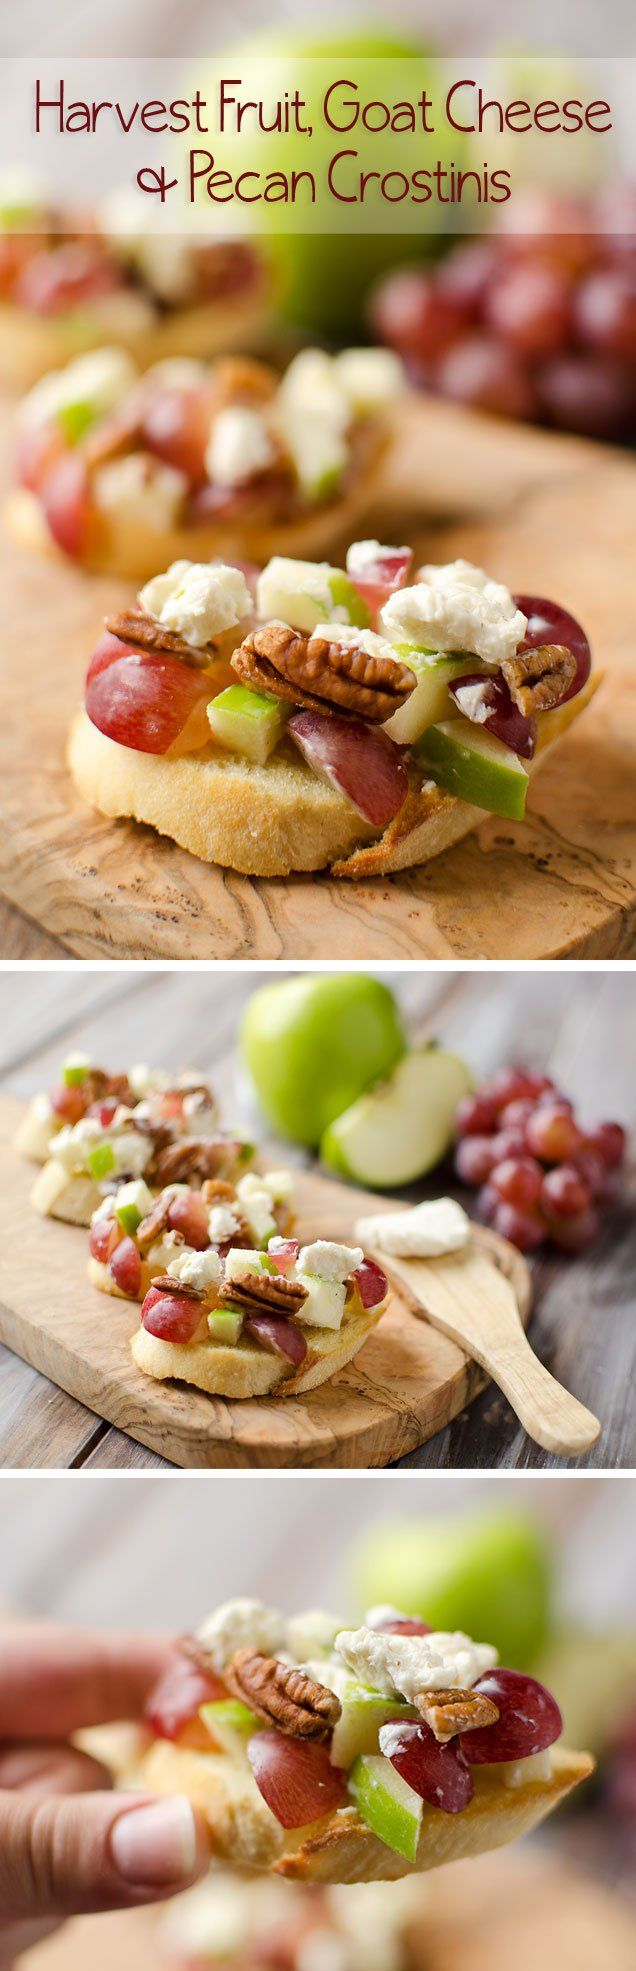 Harvest Fruit, Goat Cheese & Pecan Crostinis - A fantastic appetizer recipe for the holidays!